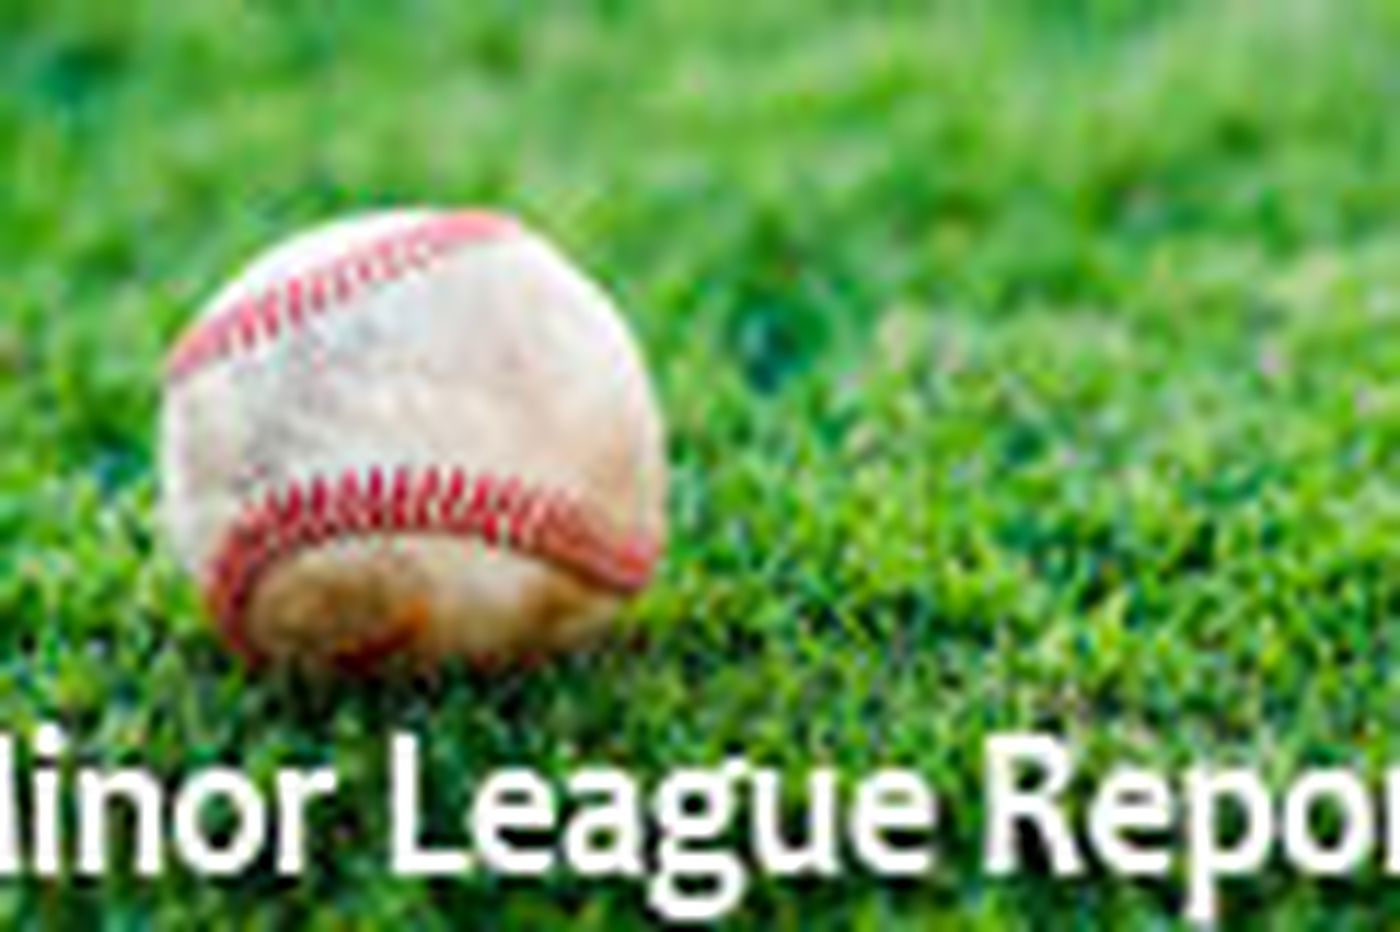 Minor Leagues: IronPigs triumph; R-Phils earn shutout